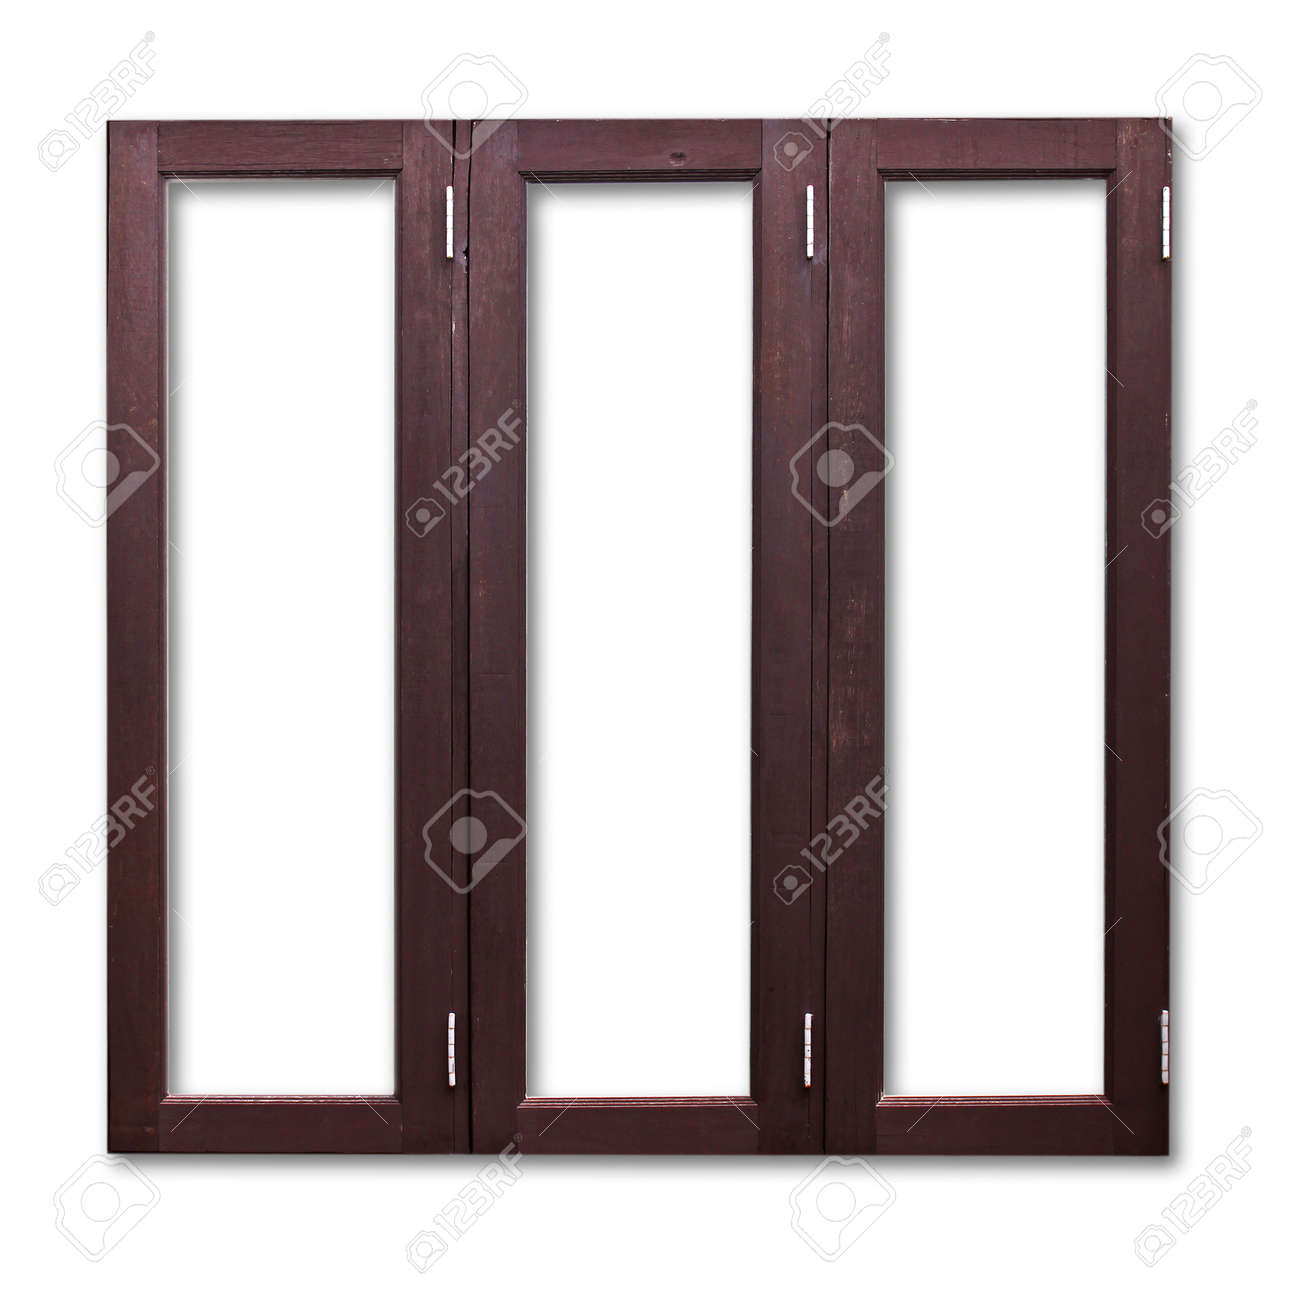 Wooden Window Frame Texture Isolated Wooden Window Frame